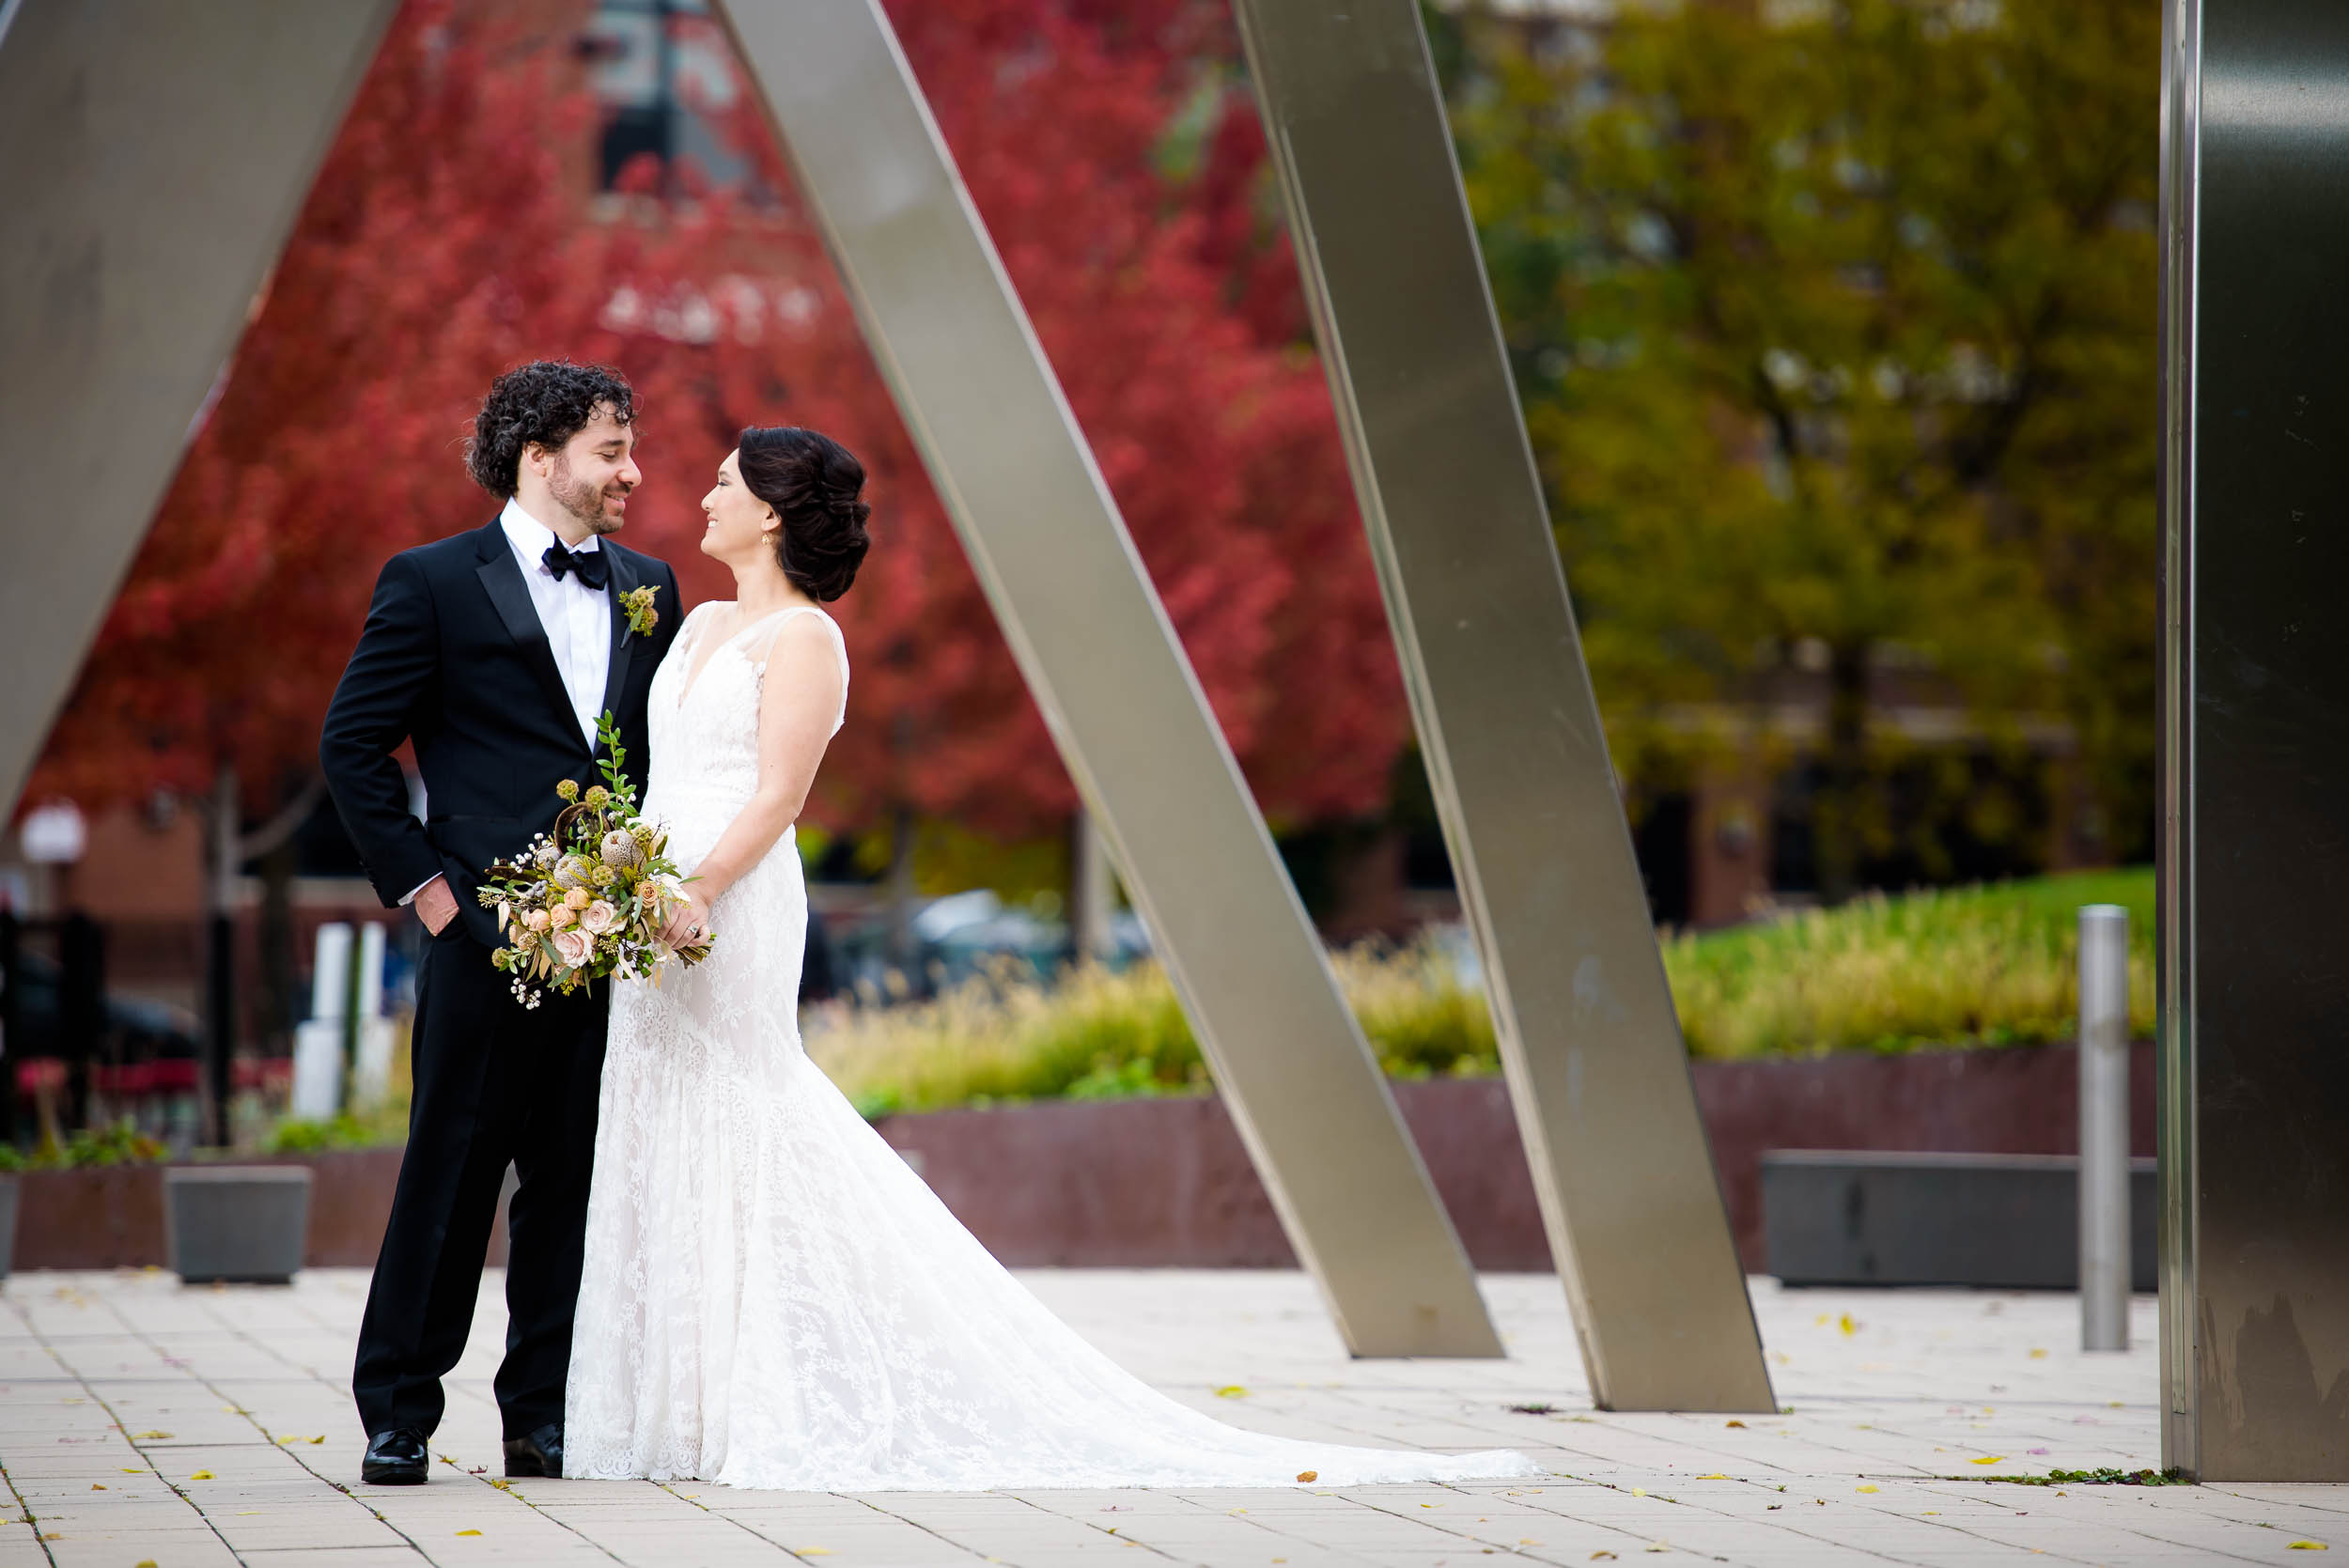 Modern wedding photo of bride and groom at Mary Bartelme Park Chicago.